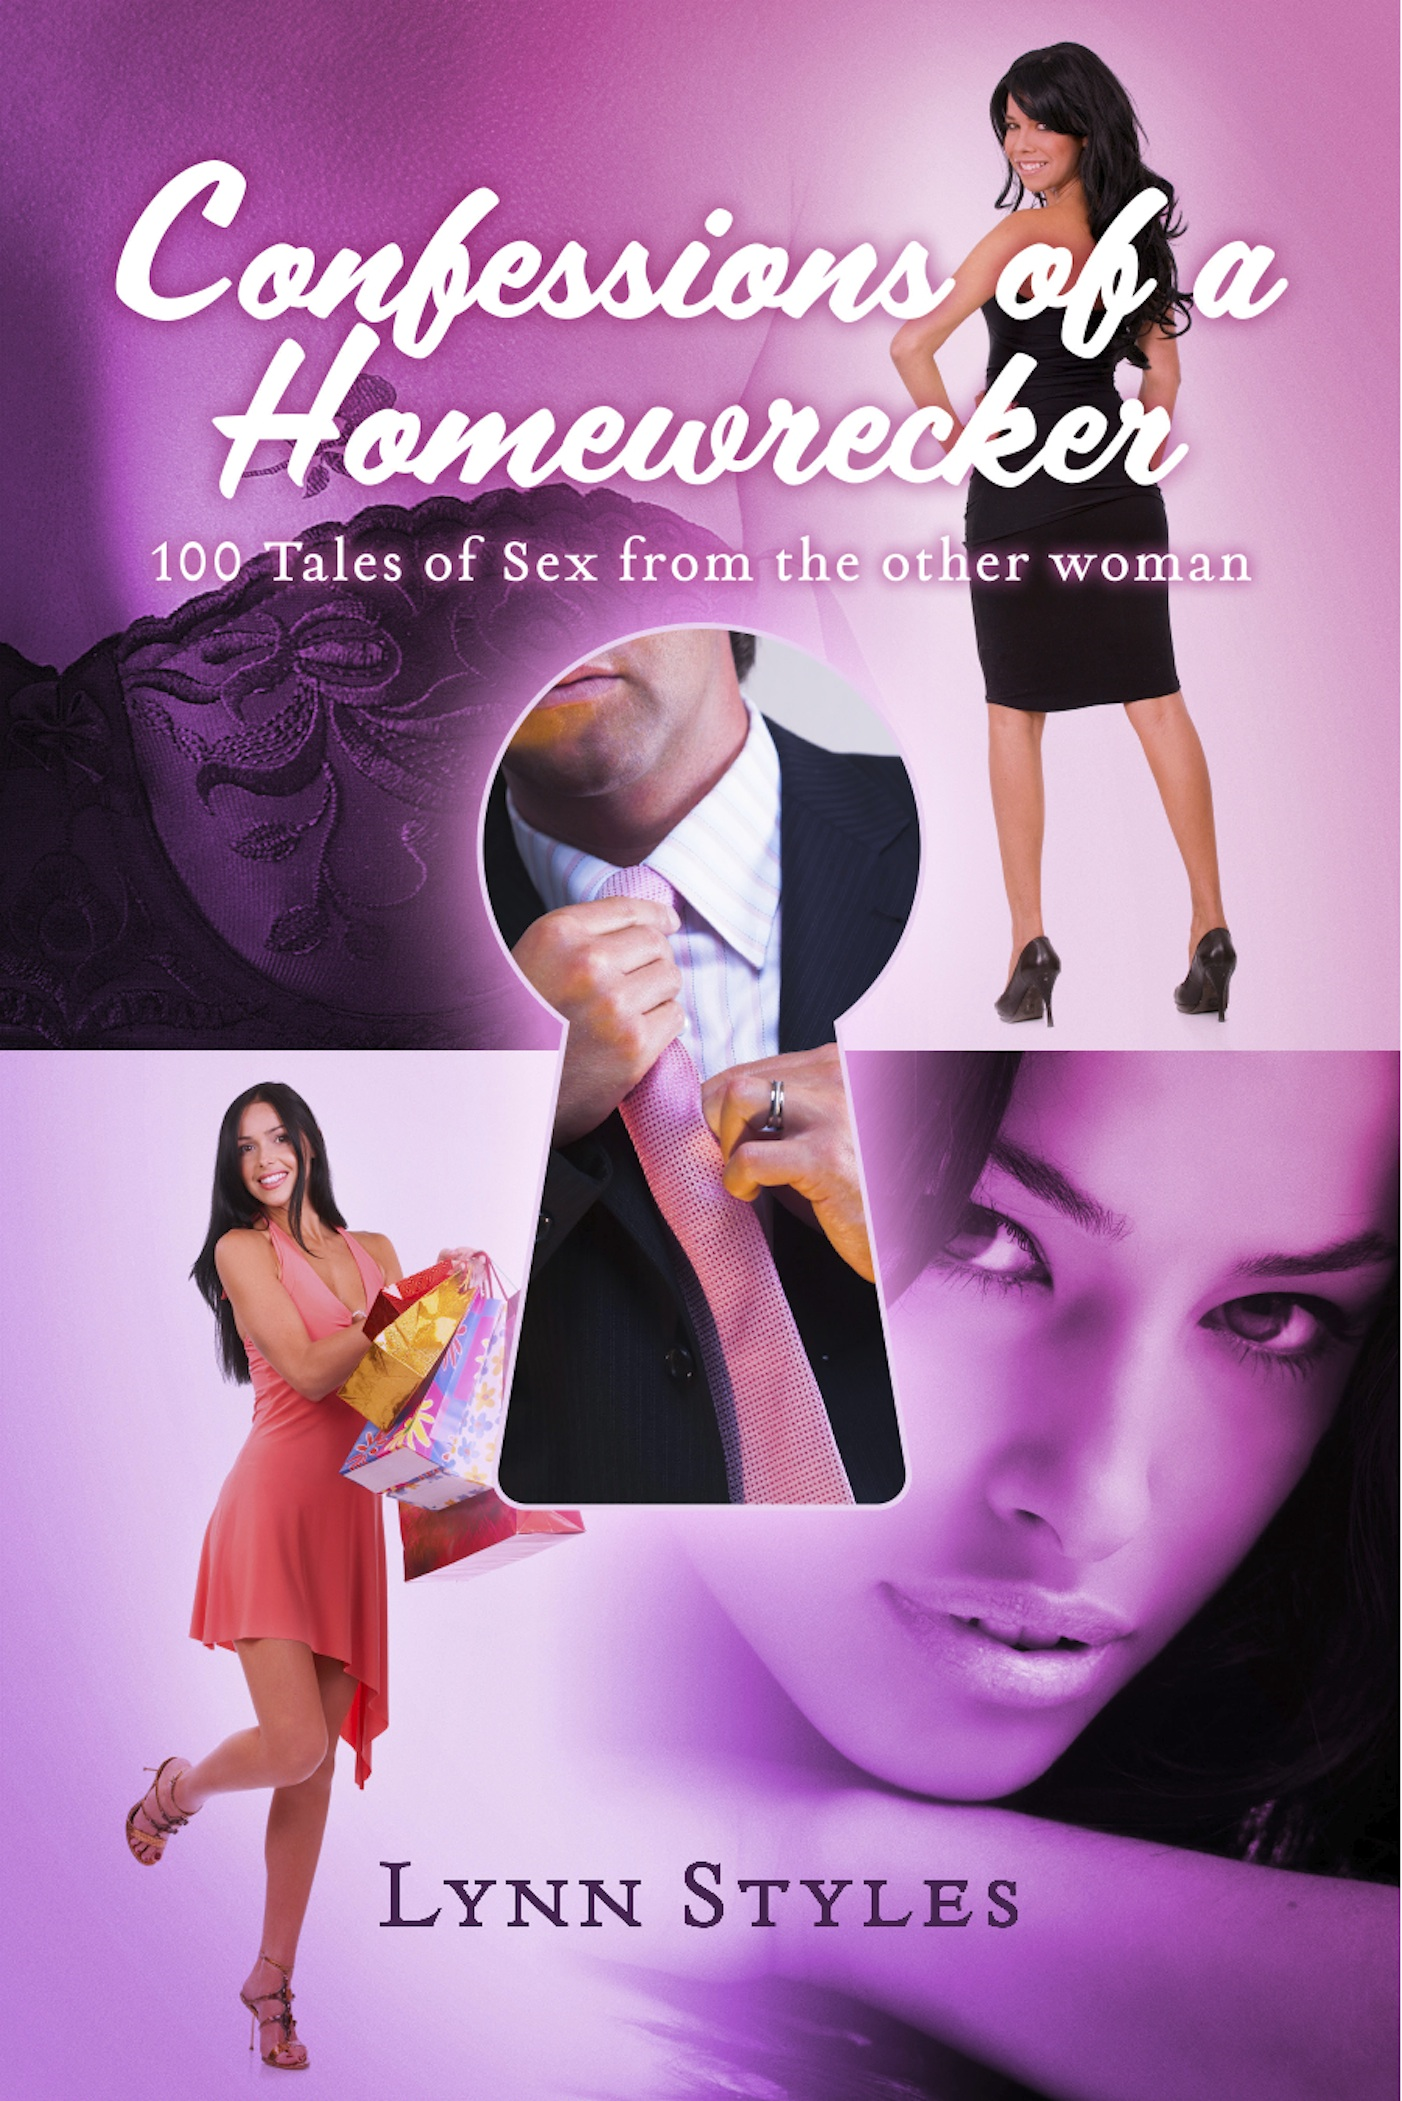 Confessions of a Homewrecker